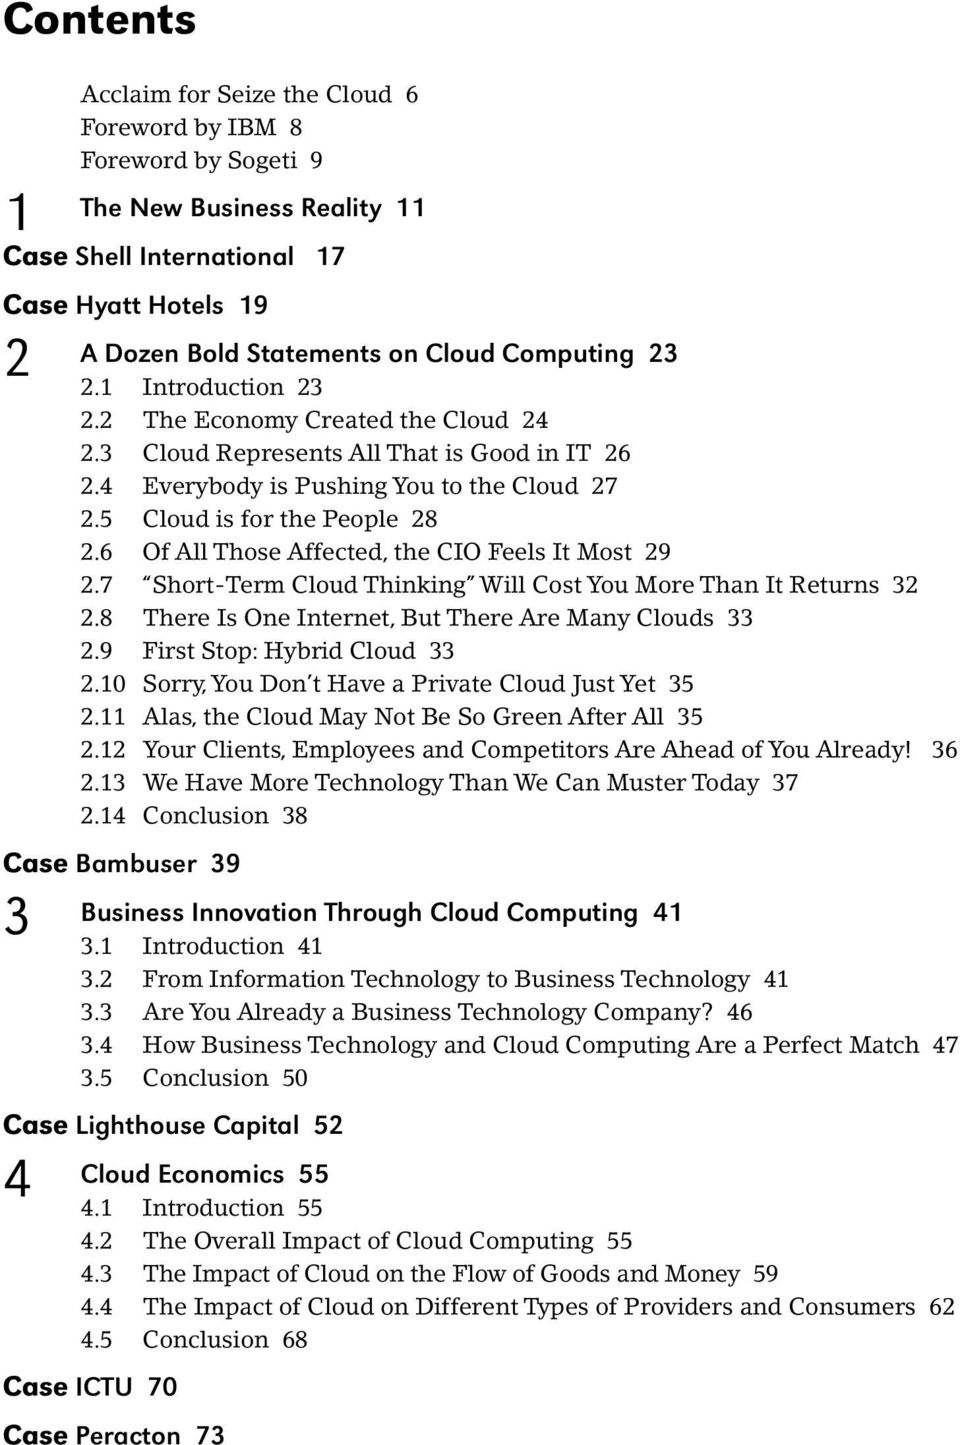 6 Of All Those Affected, the CIO Feels It Most 29 2.7 Short-Term Cloud Thinking Will Cost You More Than It Returns 32 2.8 There Is One Internet, But There Are Many Clouds 33 2.